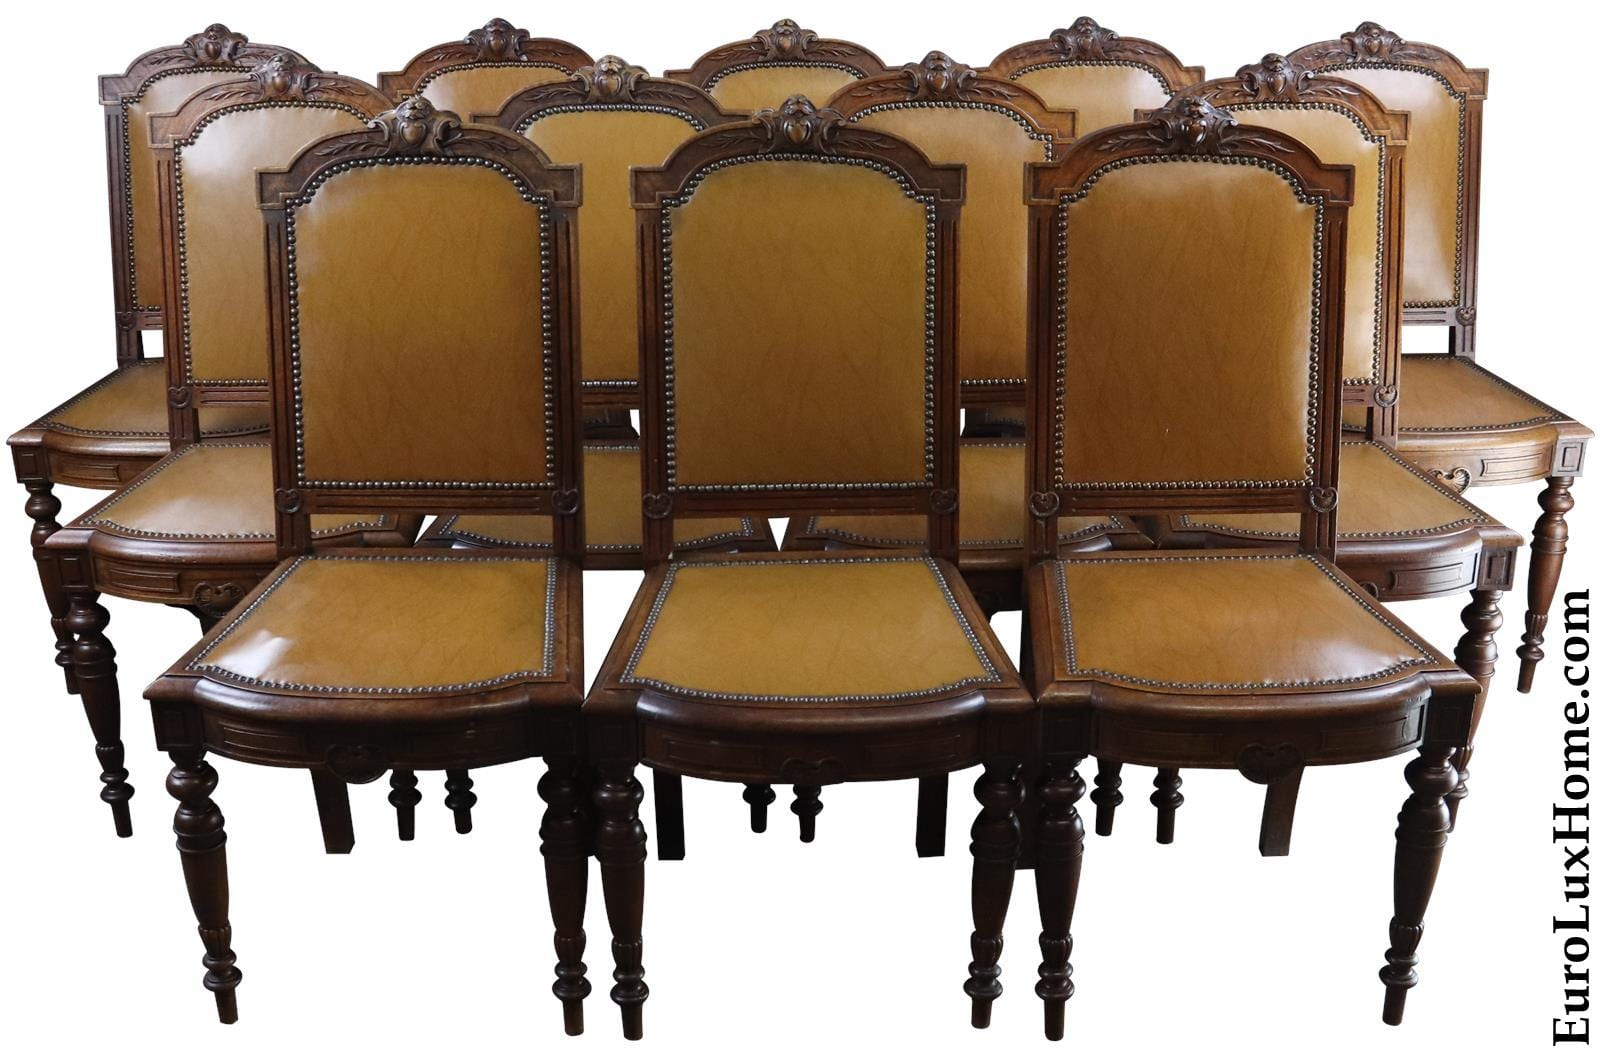 antique French Louis XVI dining chairs from EuroLuxHome.com